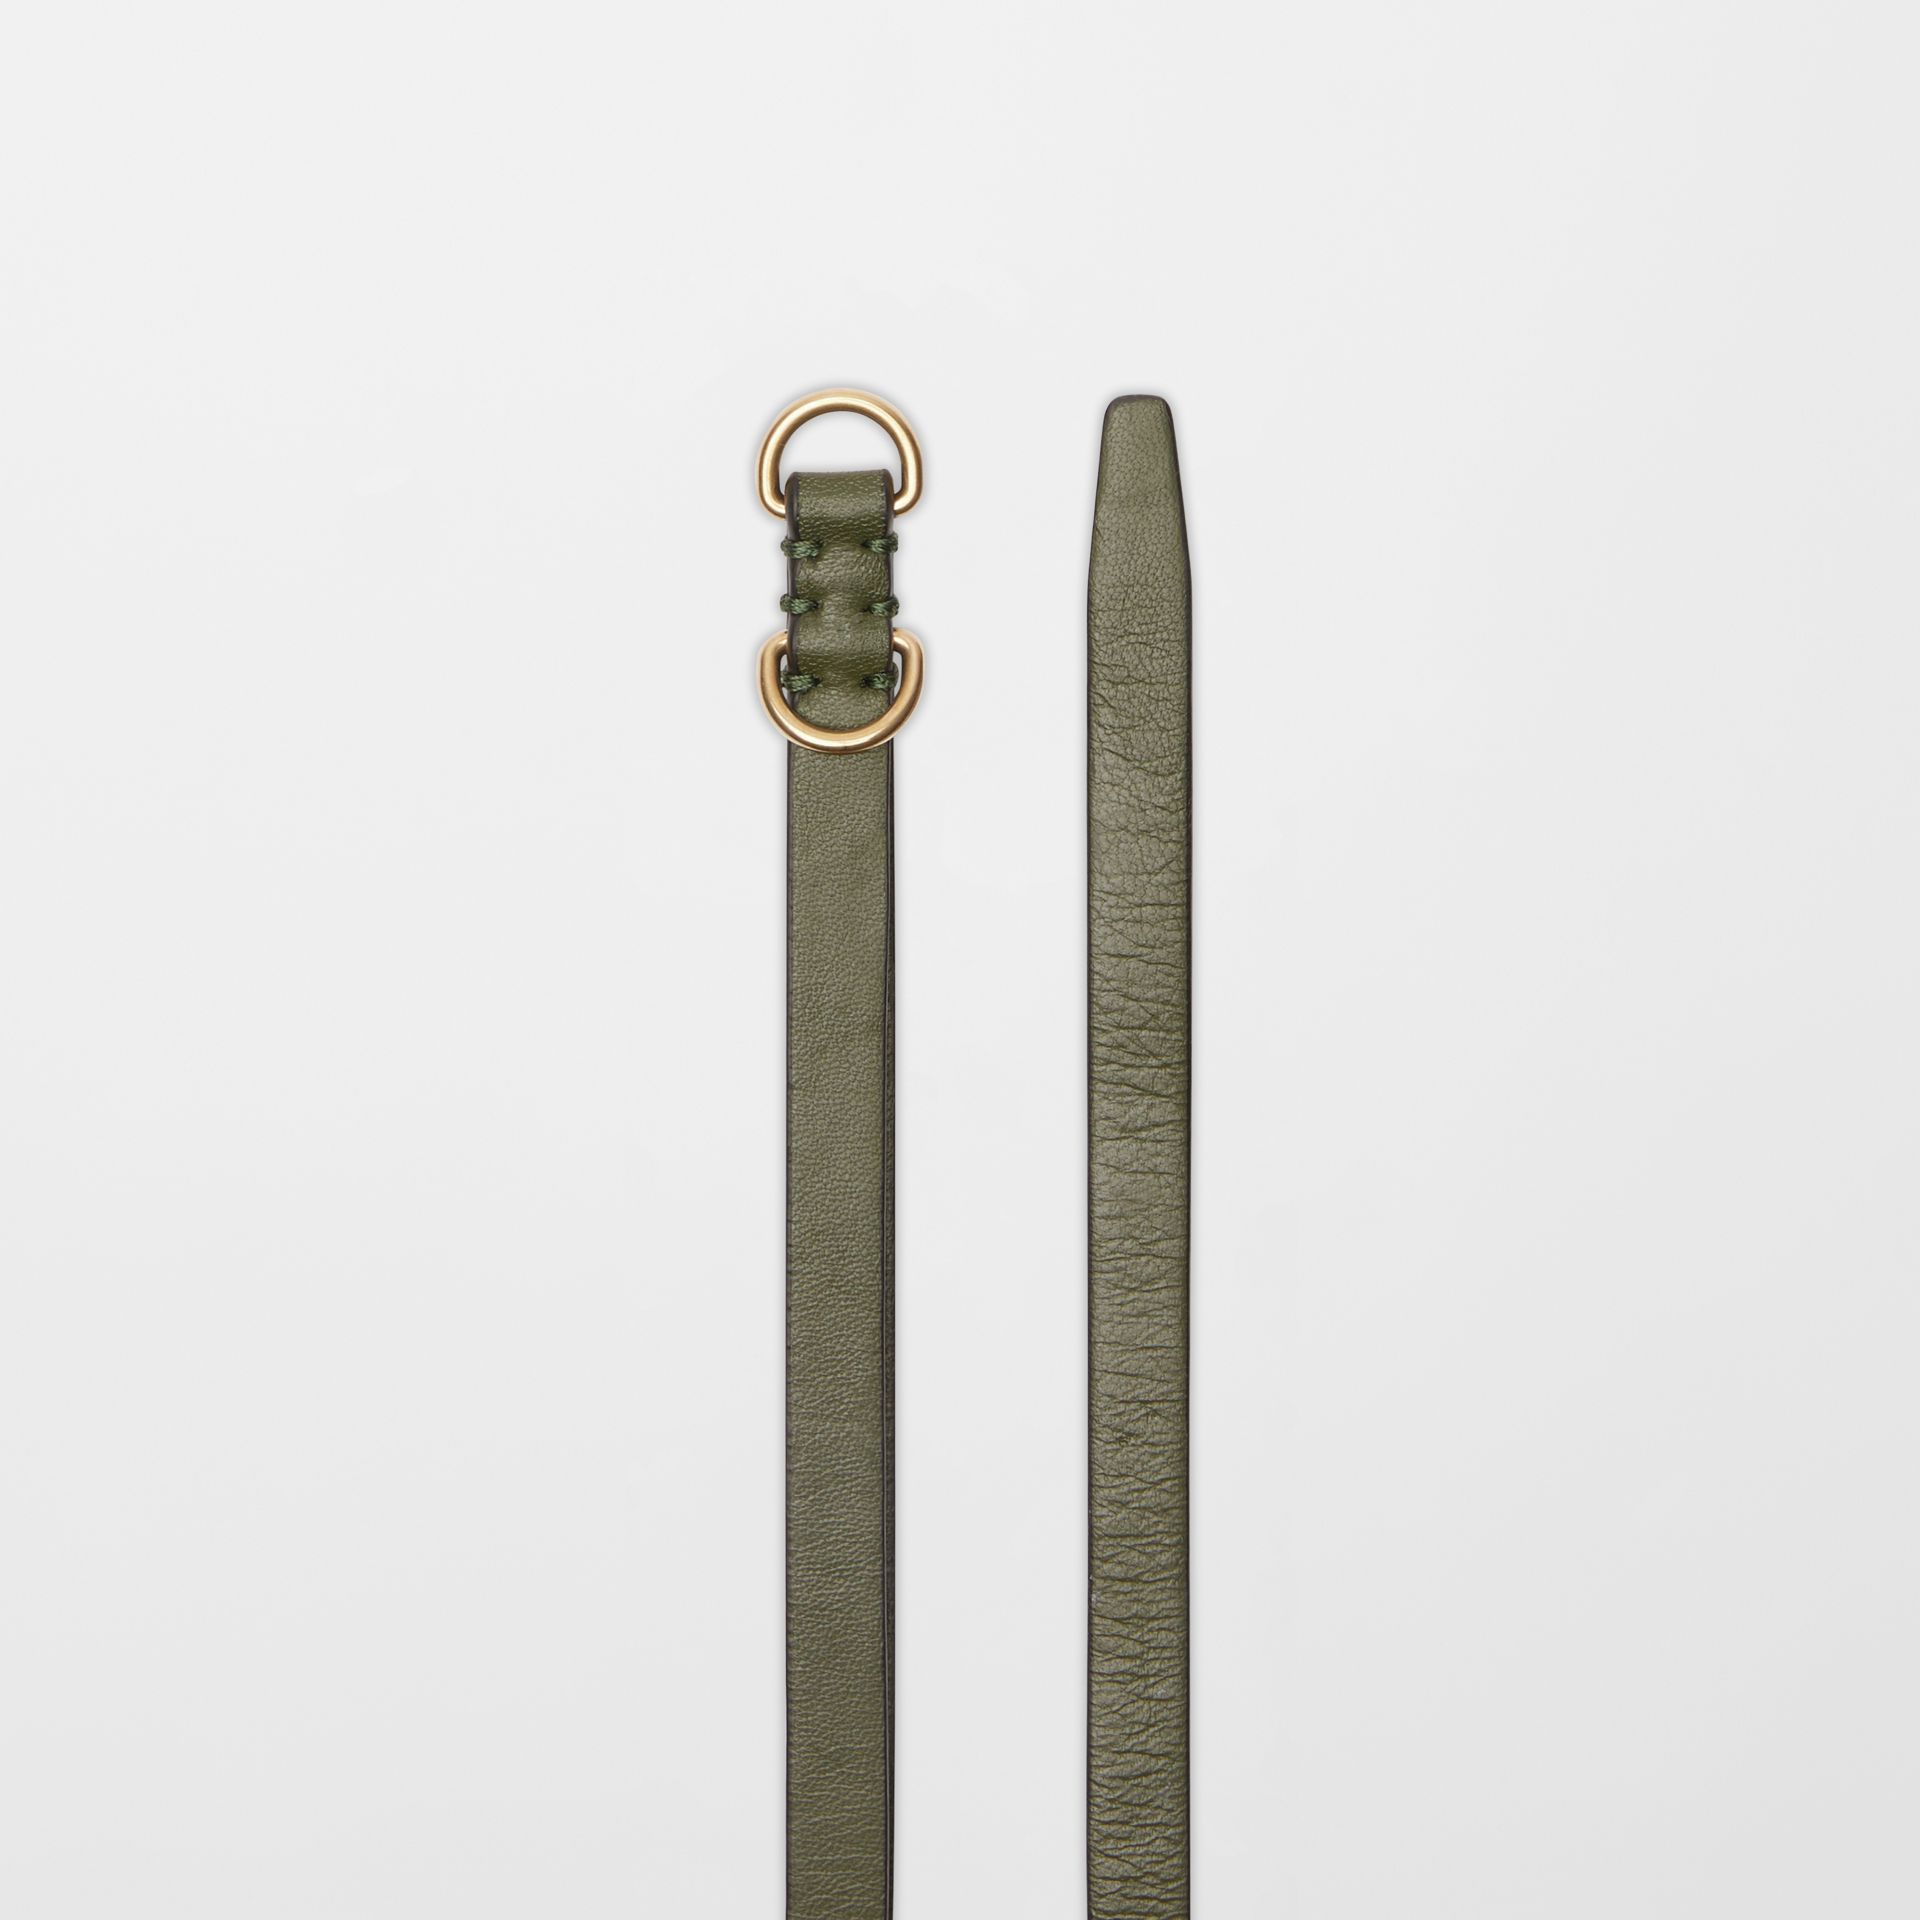 Grommet Detail Lambskin Belt in Dark Olive - Women | Burberry - gallery image 5